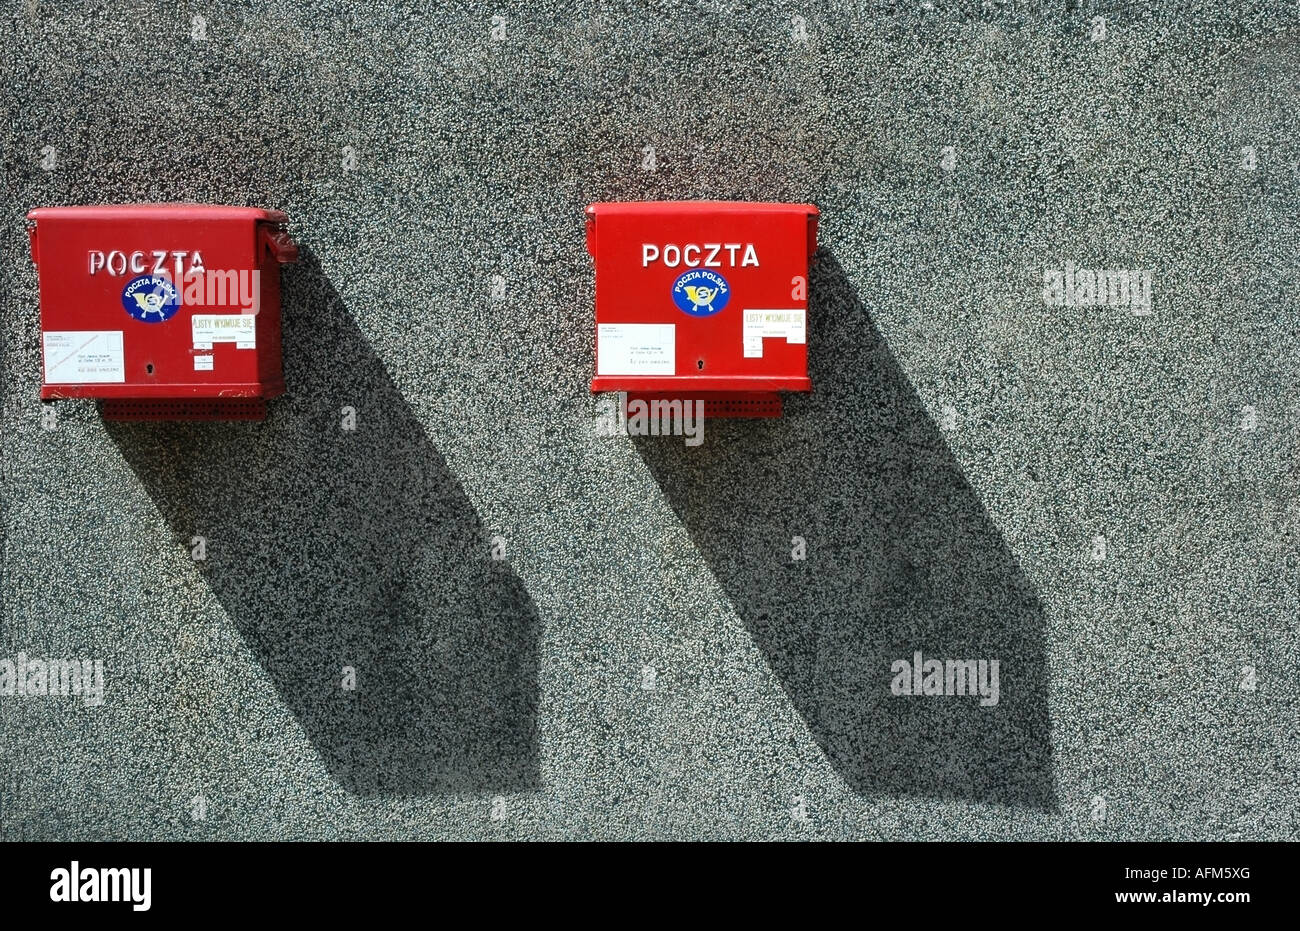 Two red letter postal box s, one old and one new on a gray wall, Warsaw, Poland, Europe, EU - Stock Image